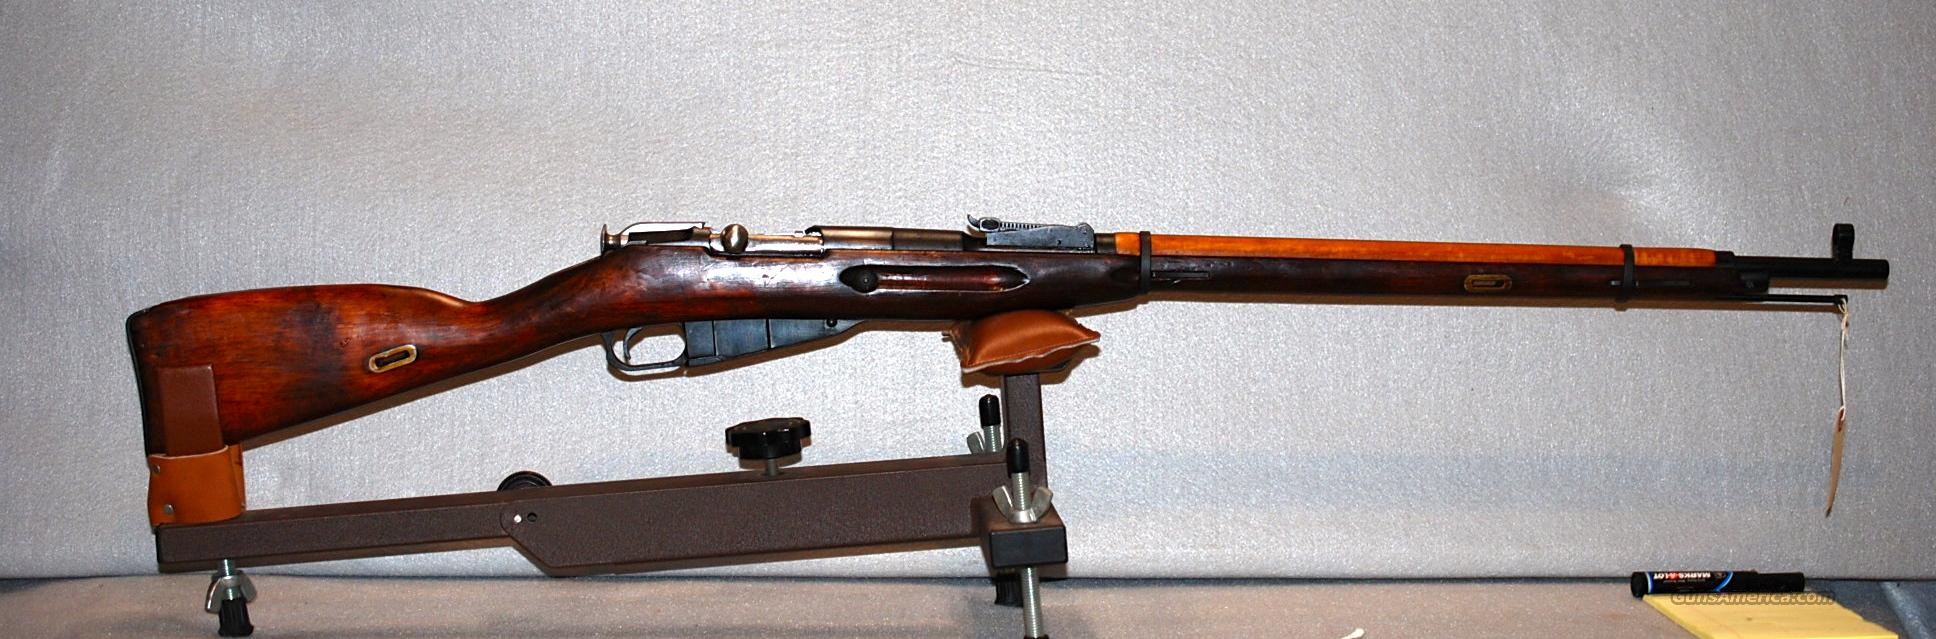 Mosin Nagant 91/30 1944   Guns > Rifles > Mosin-Nagant Rifles/Carbines